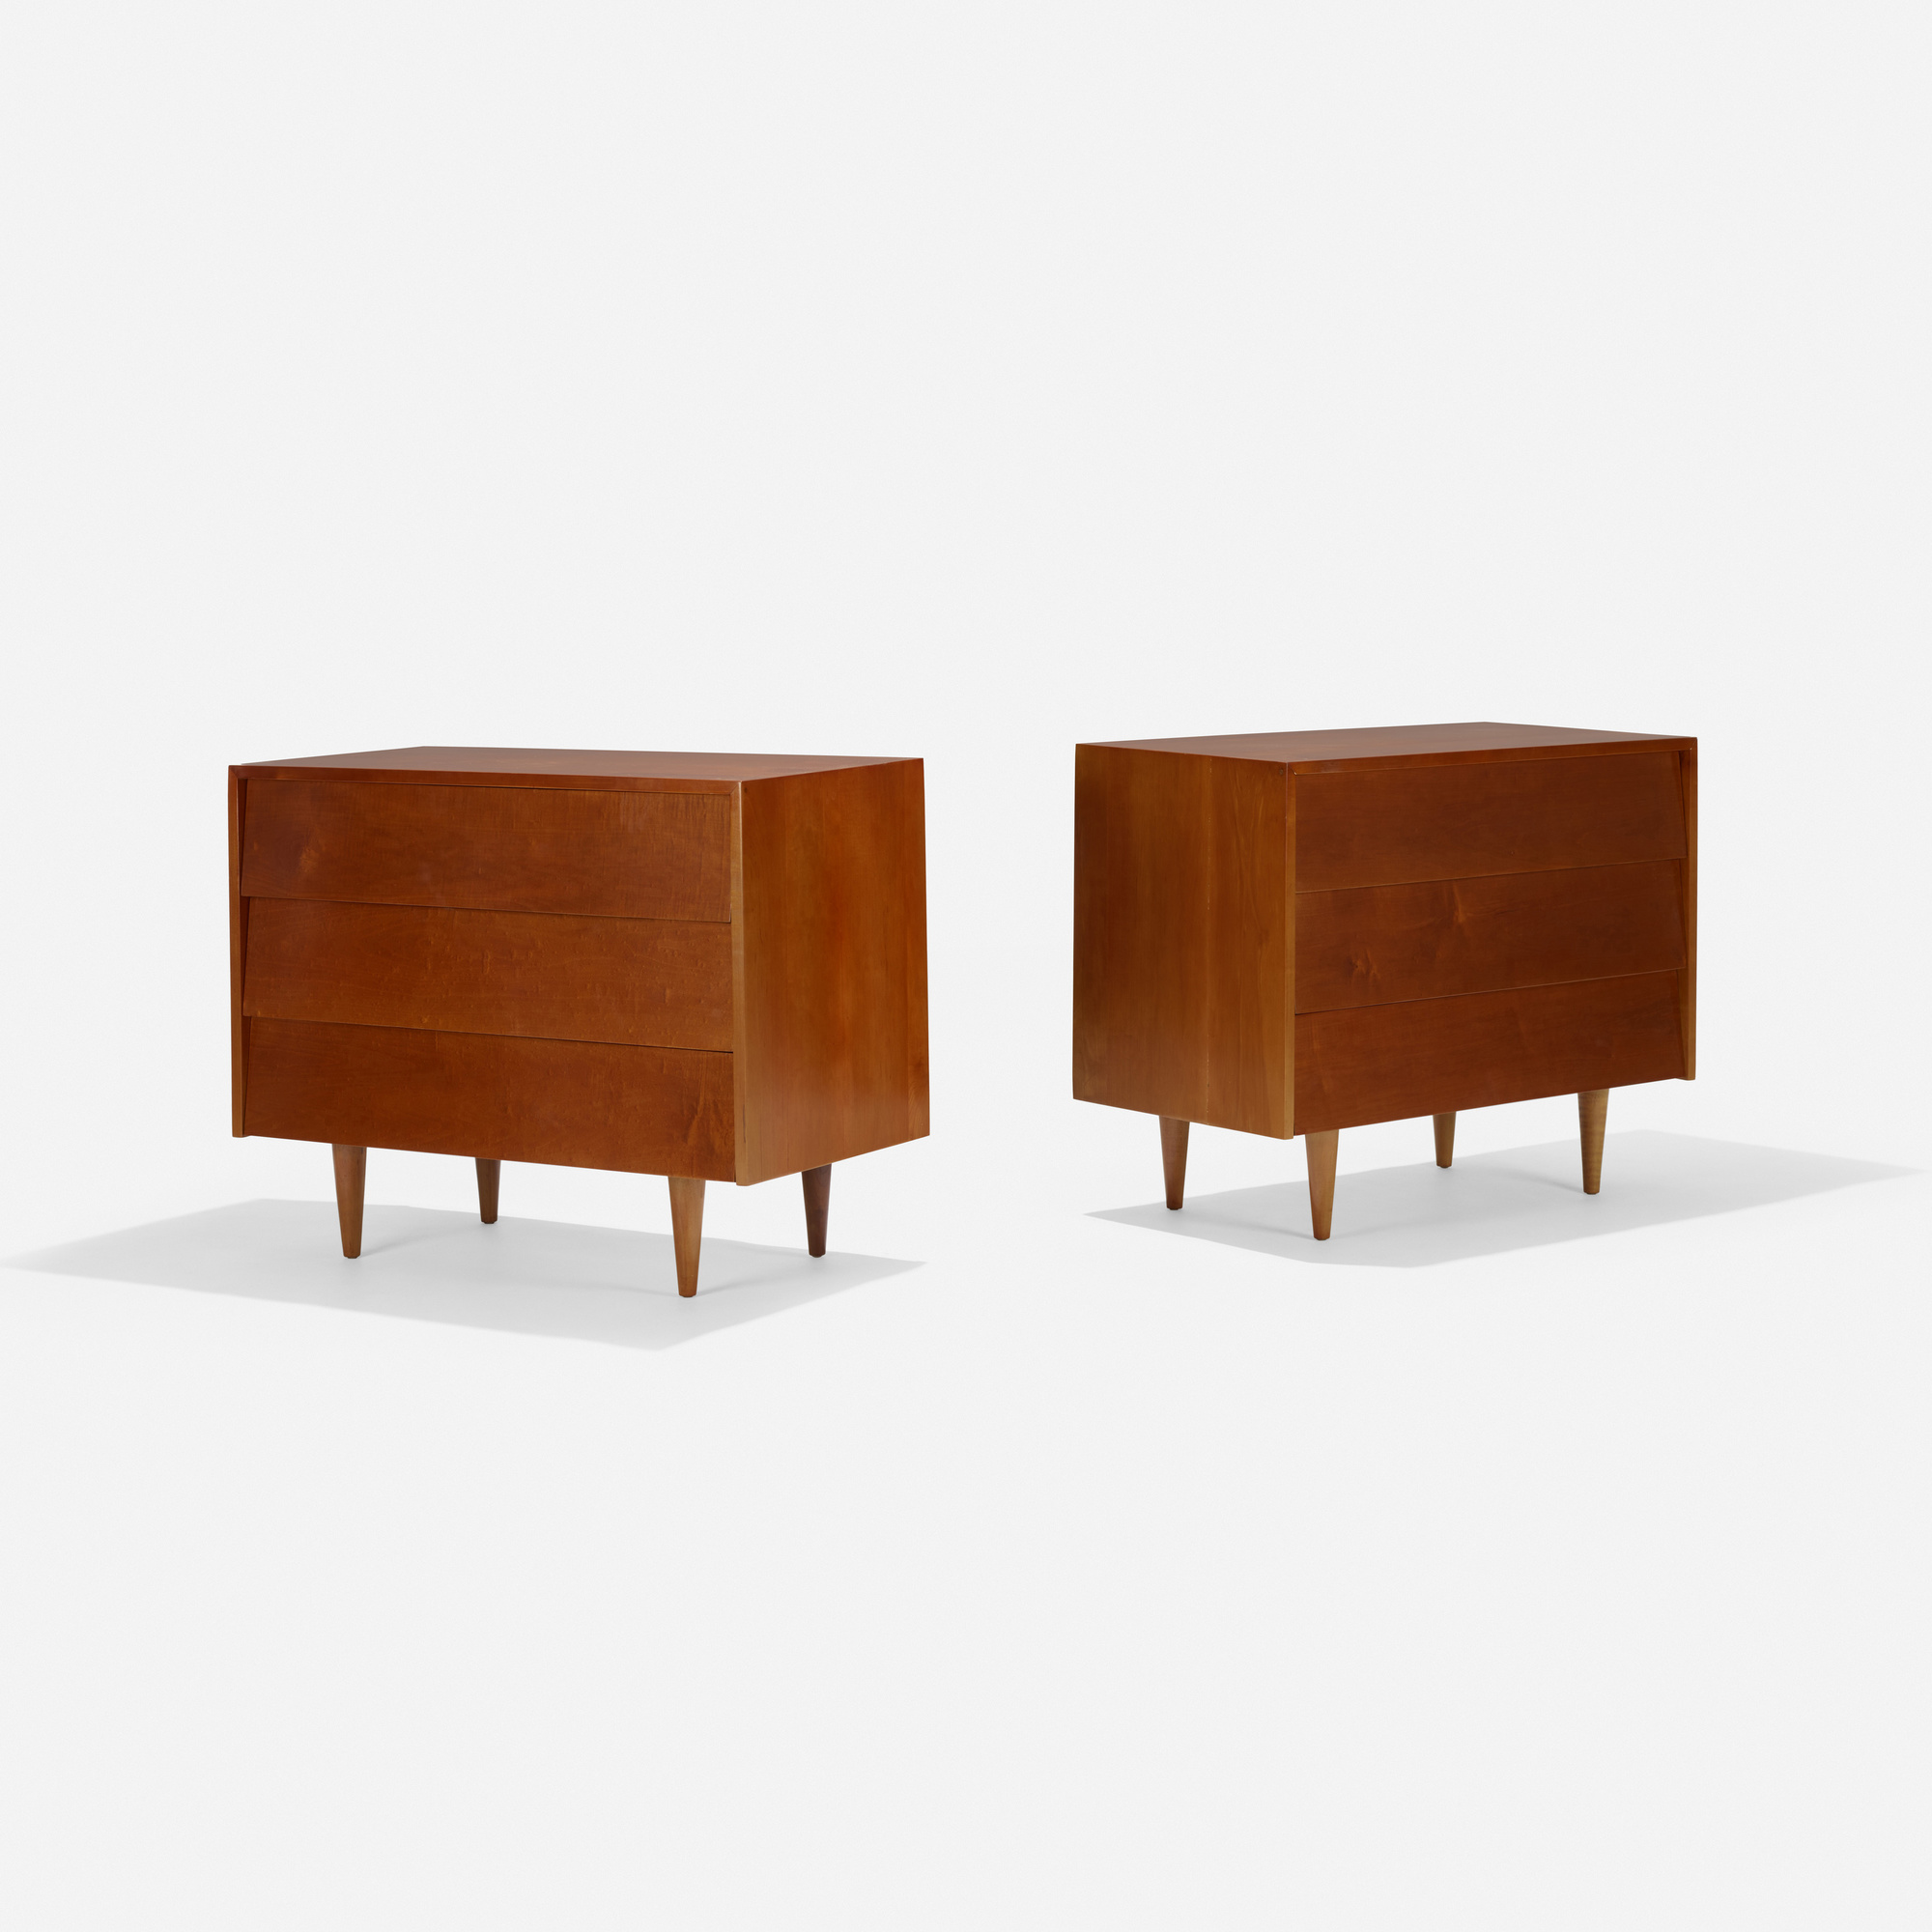 225: Florence Knoll / cabinets, pair (2 of 3)